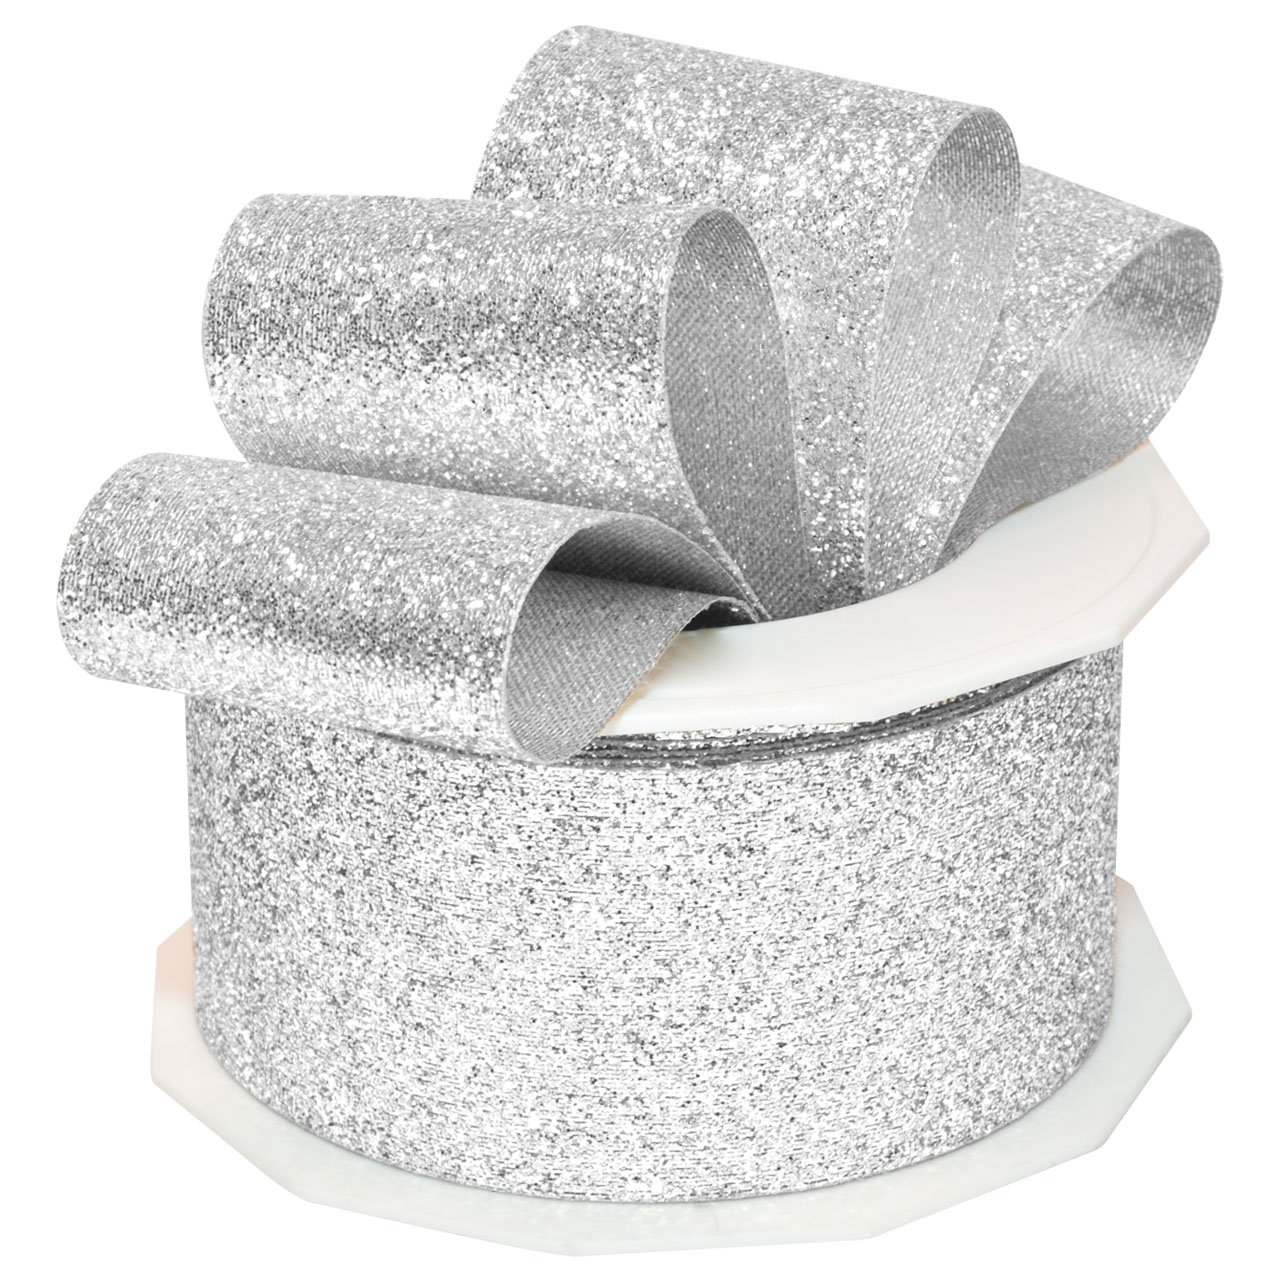 Yardbright coupon codes - Amazon Com Morex Ribbon 98509 10 631 Metallic And Nylon Princess Glitter Ribbon 1 1 2 Inch By 10 Yard Silver